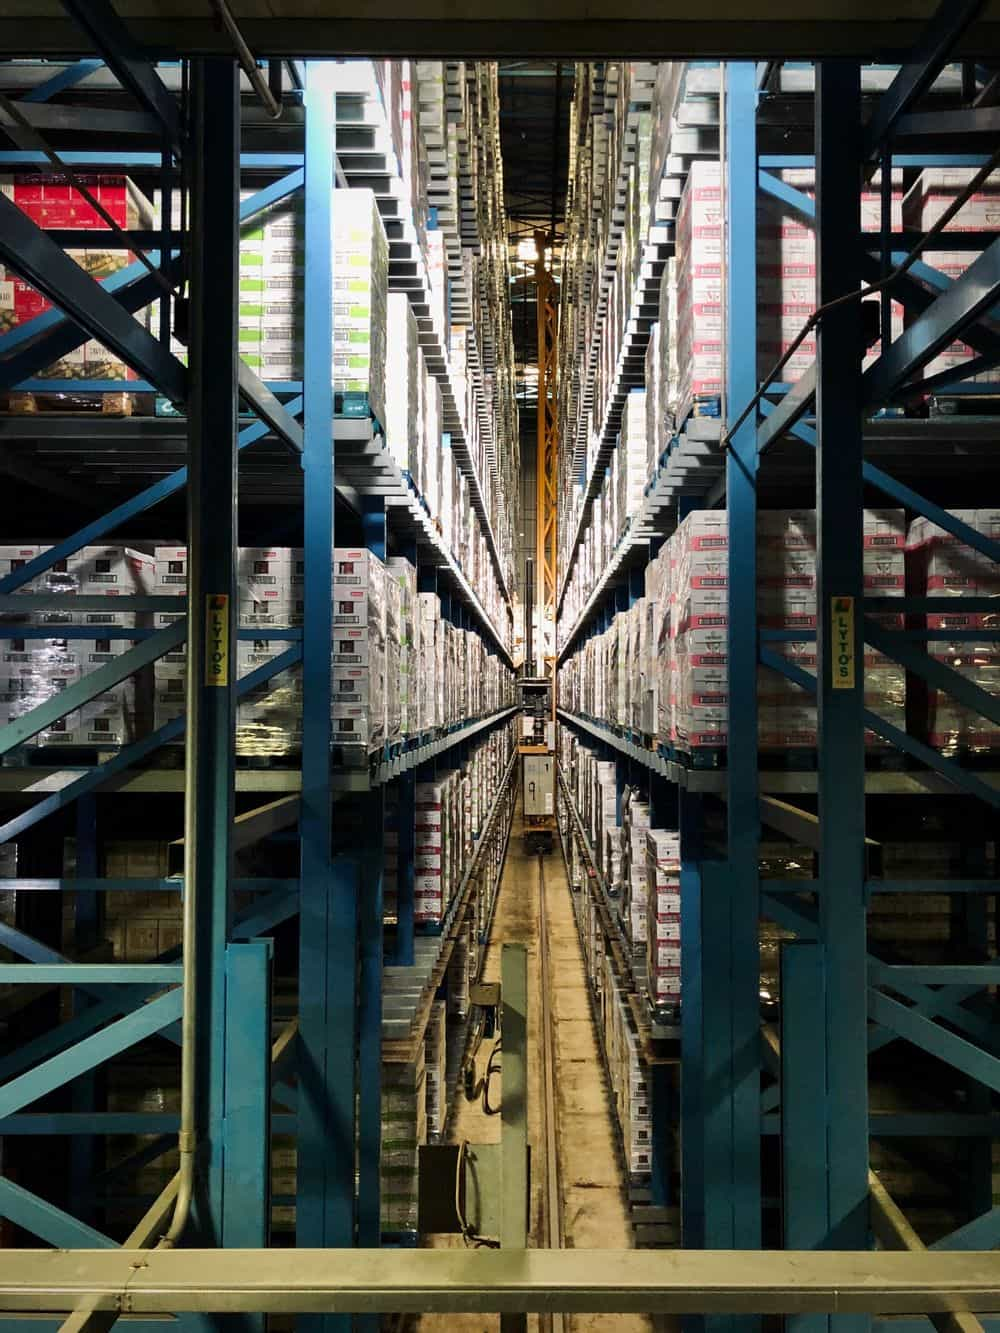 Reduced equipment failures upon delivery to customers